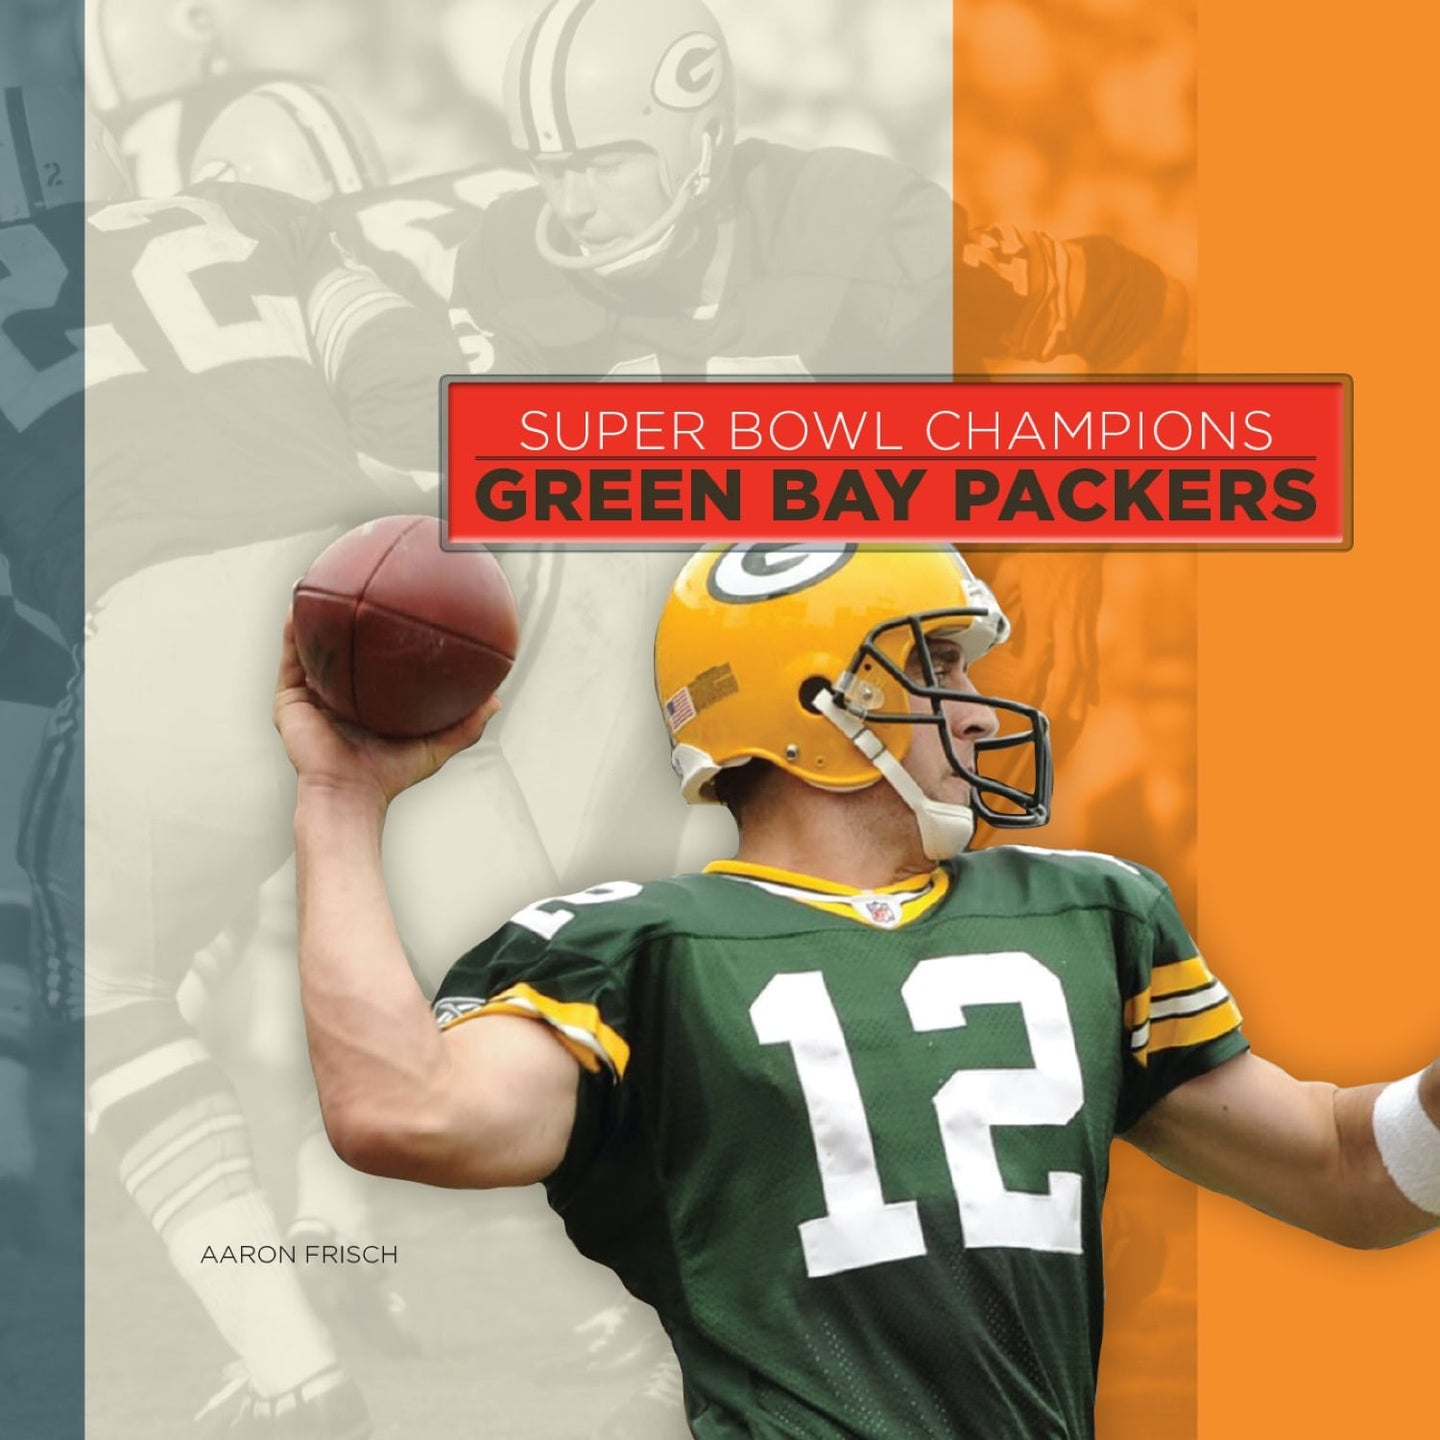 Super Bowl Champions: Green Bay Packers